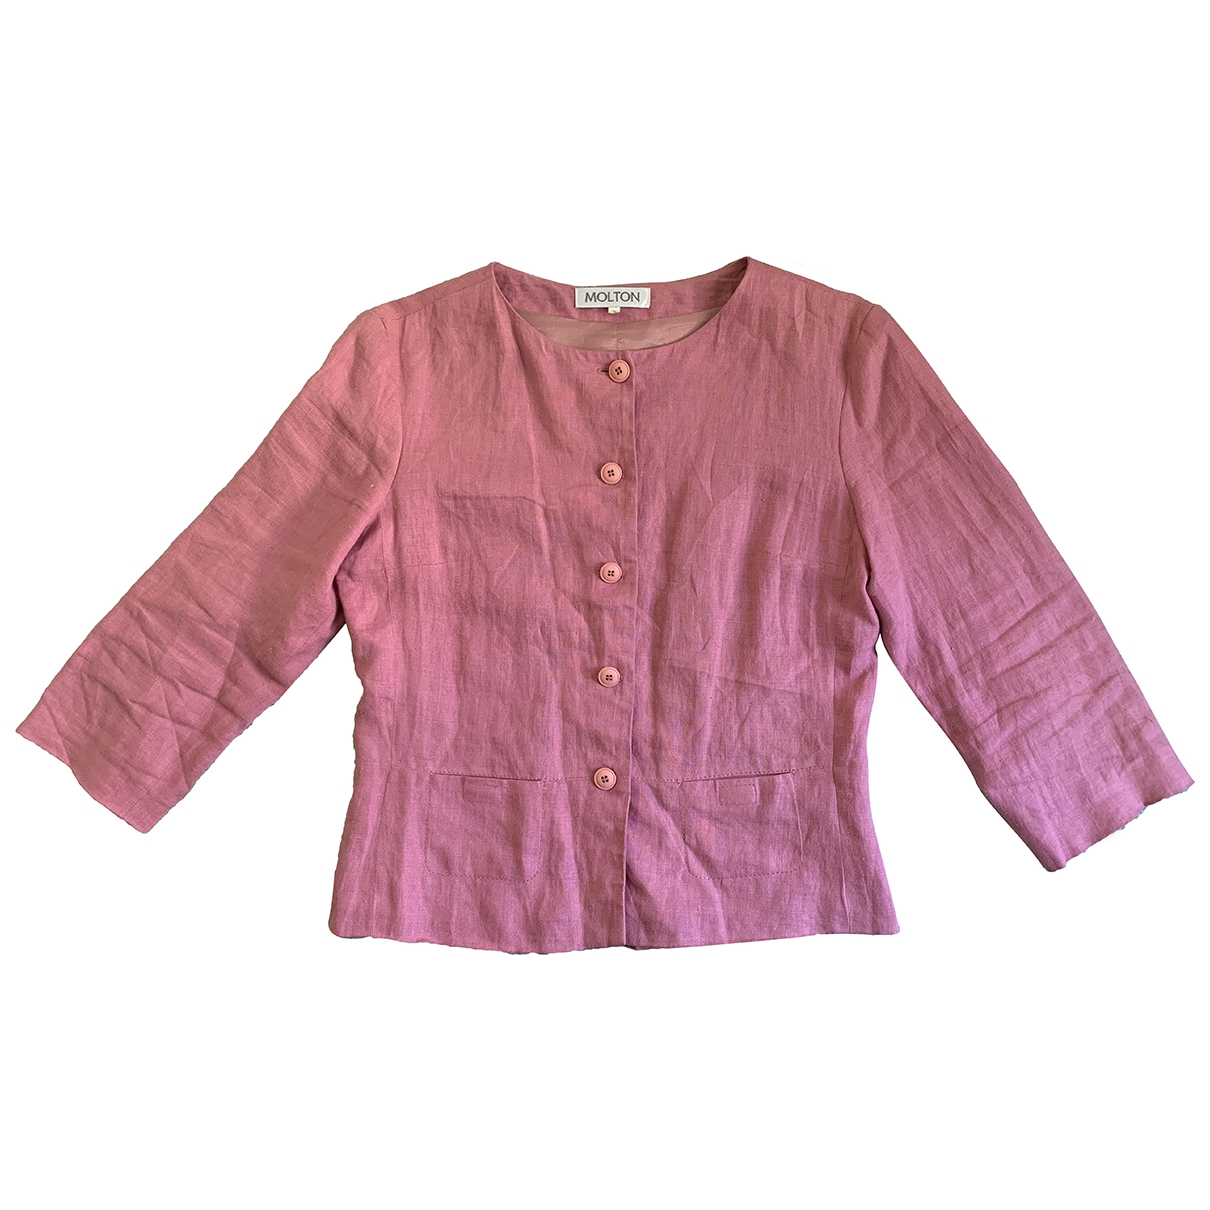 Non Signé / Unsigned \N Pink Linen jacket for Women S International